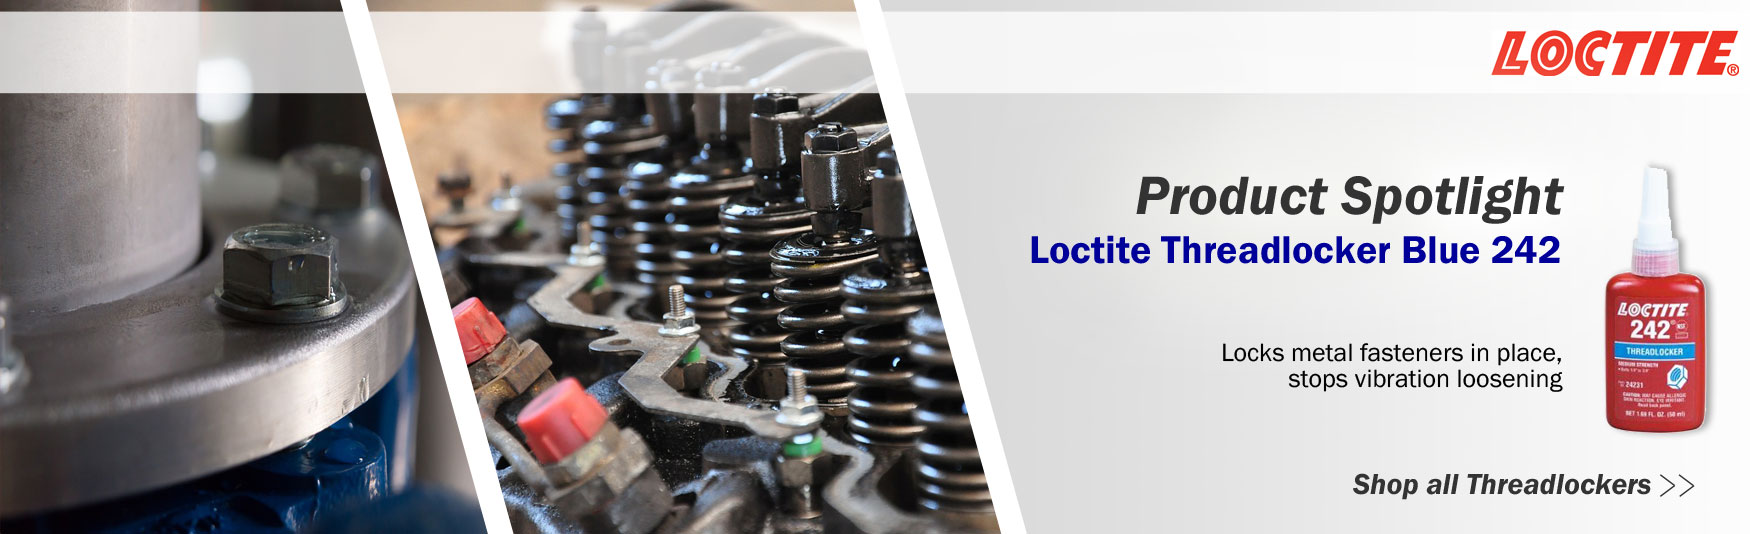 Loctite Threadlocker Blue 242